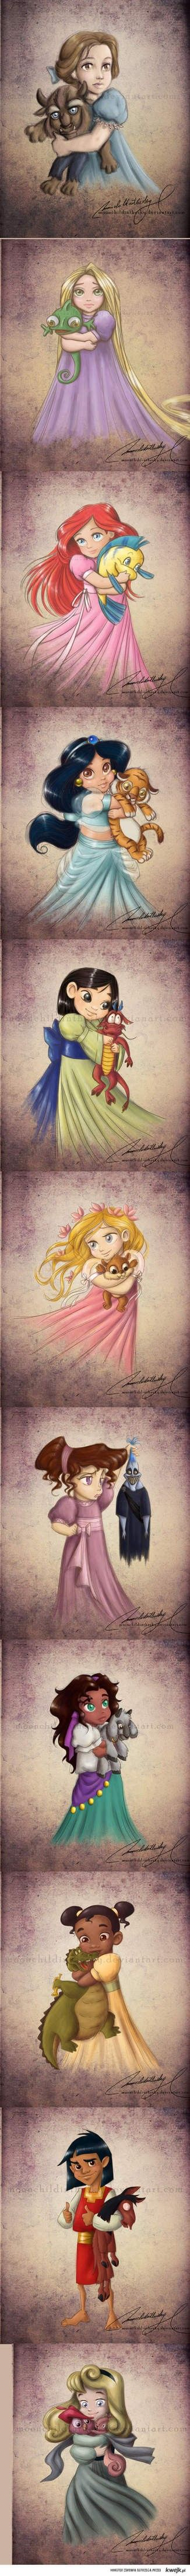 little disney princess drawings